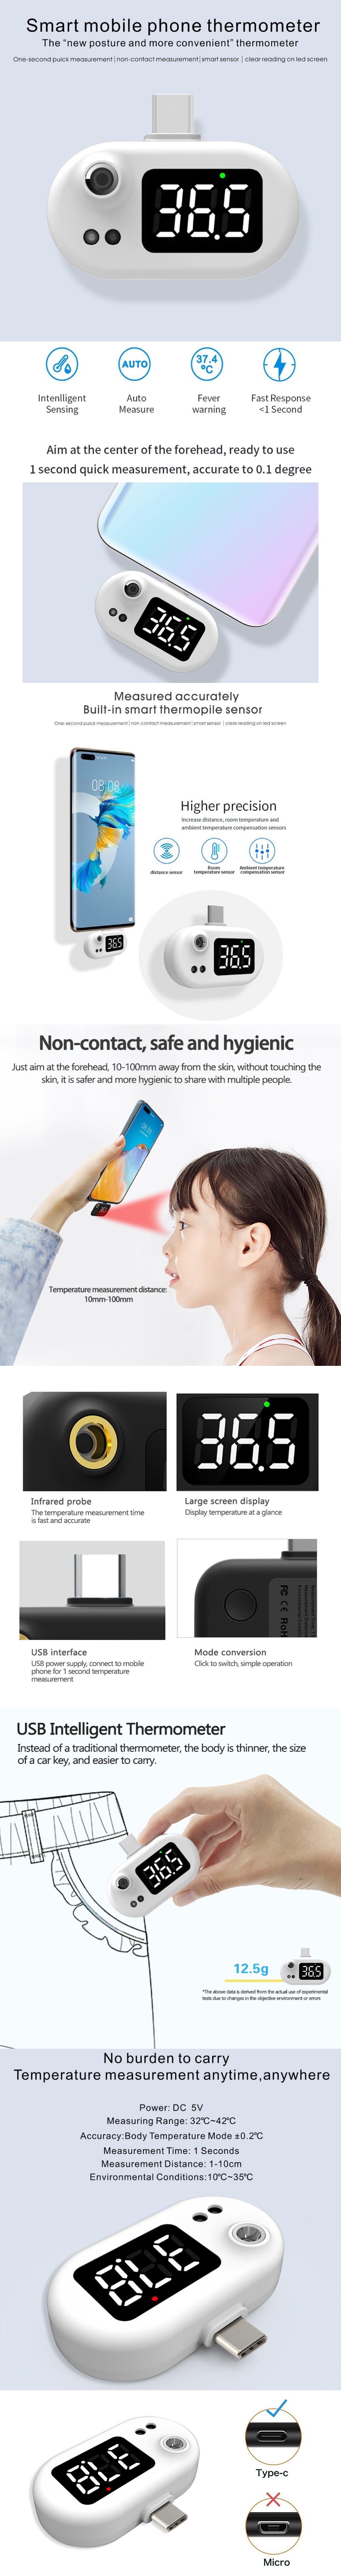 Non-contact Type Infrared USB Type-c Smart Thermometer for Xiaomi/Huawei/Samsung - White